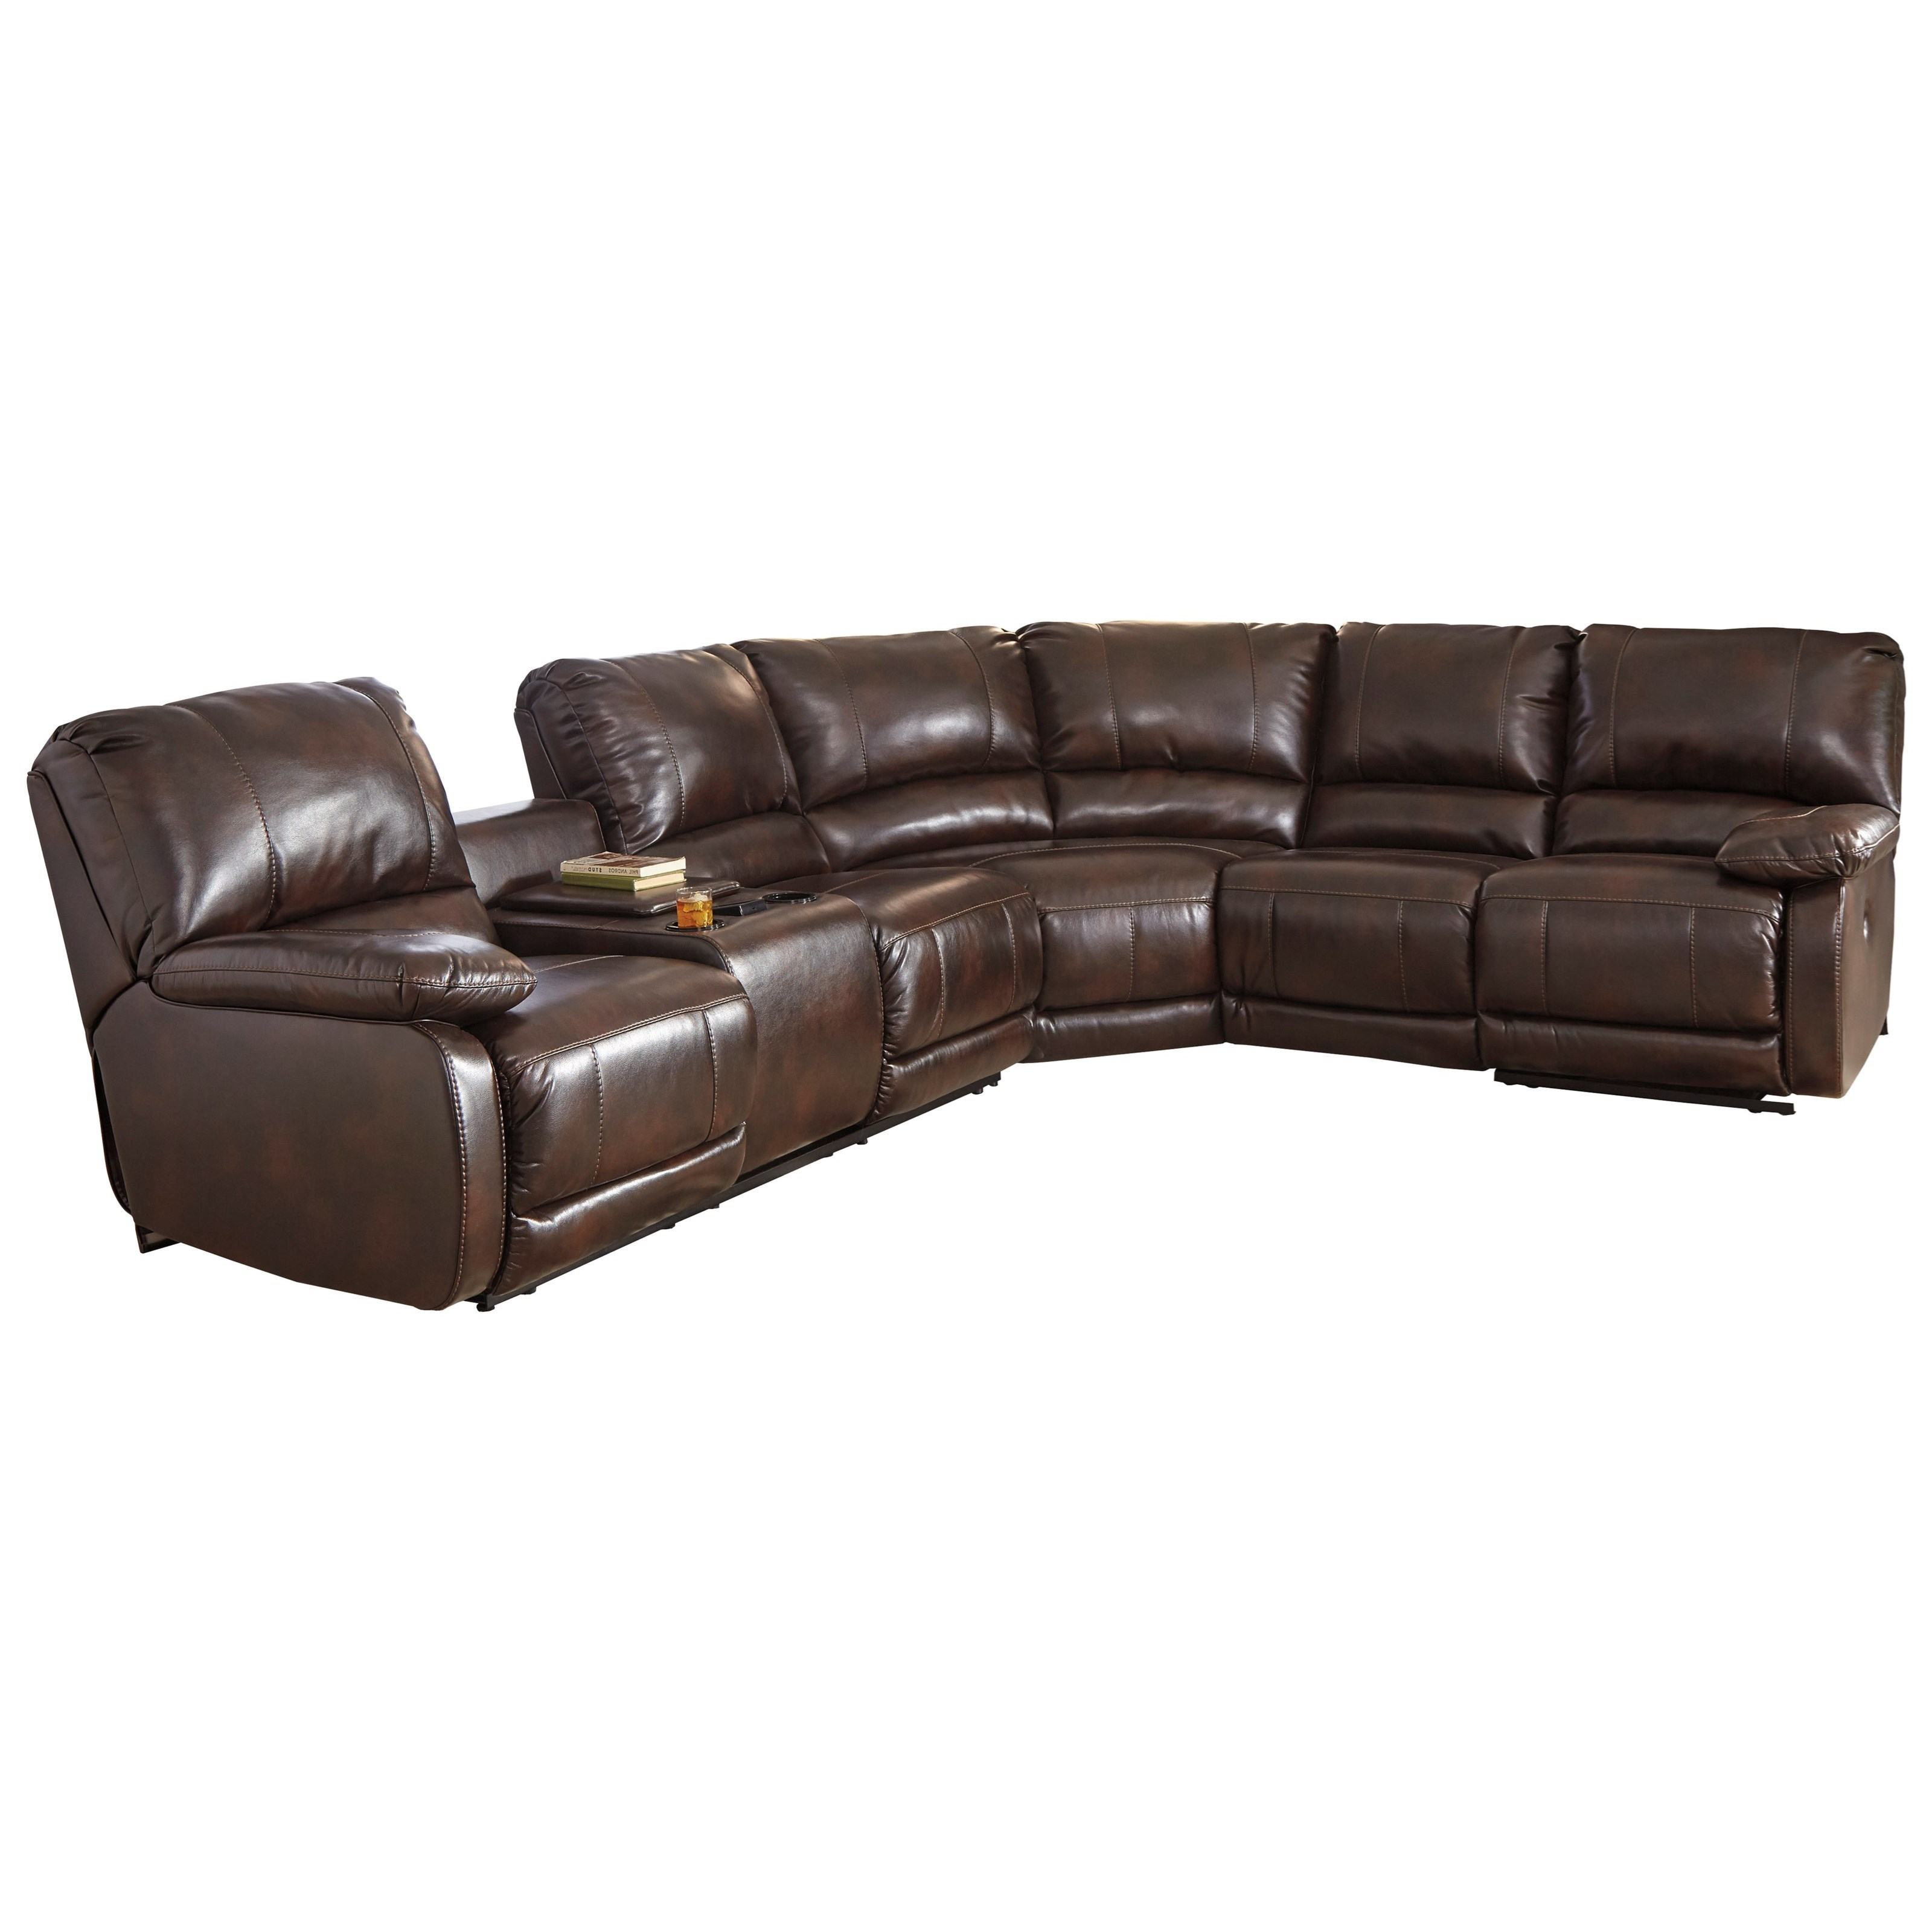 Signature Design by Ashley Hallettsville Power Reclining Sectional with Massage Heat and Cup Holder Cooling - Furniture and ApplianceMart - Reclining ...  sc 1 st  Furniture and ApplianceMart & Signature Design by Ashley Hallettsville Power Reclining Sectional ... islam-shia.org